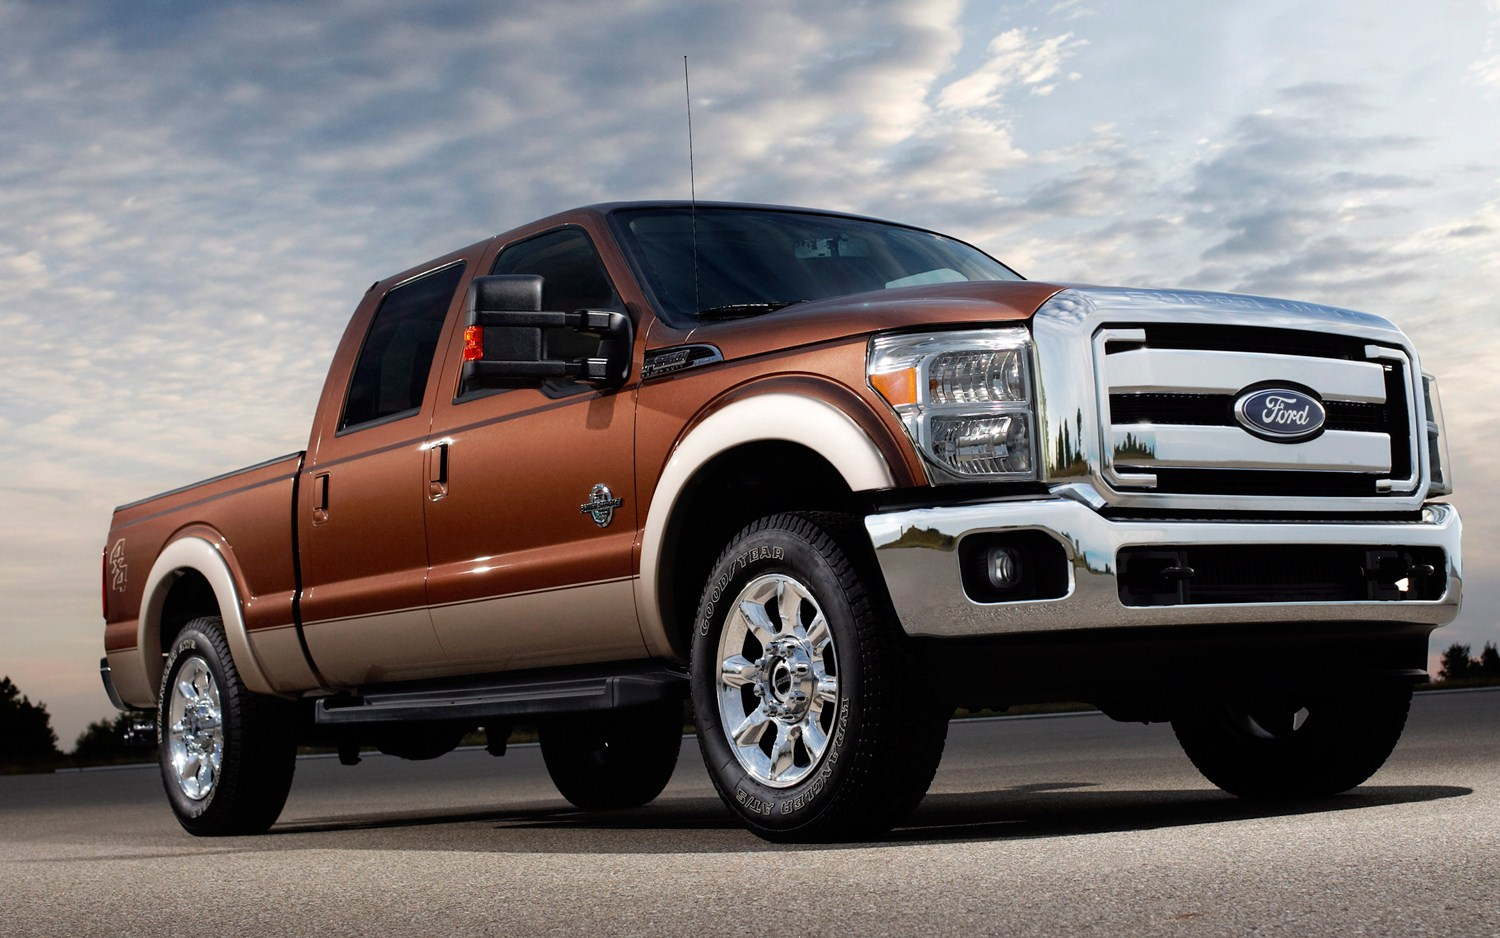 ford f 250 super duty images car hd wallpapers prices review. Black Bedroom Furniture Sets. Home Design Ideas